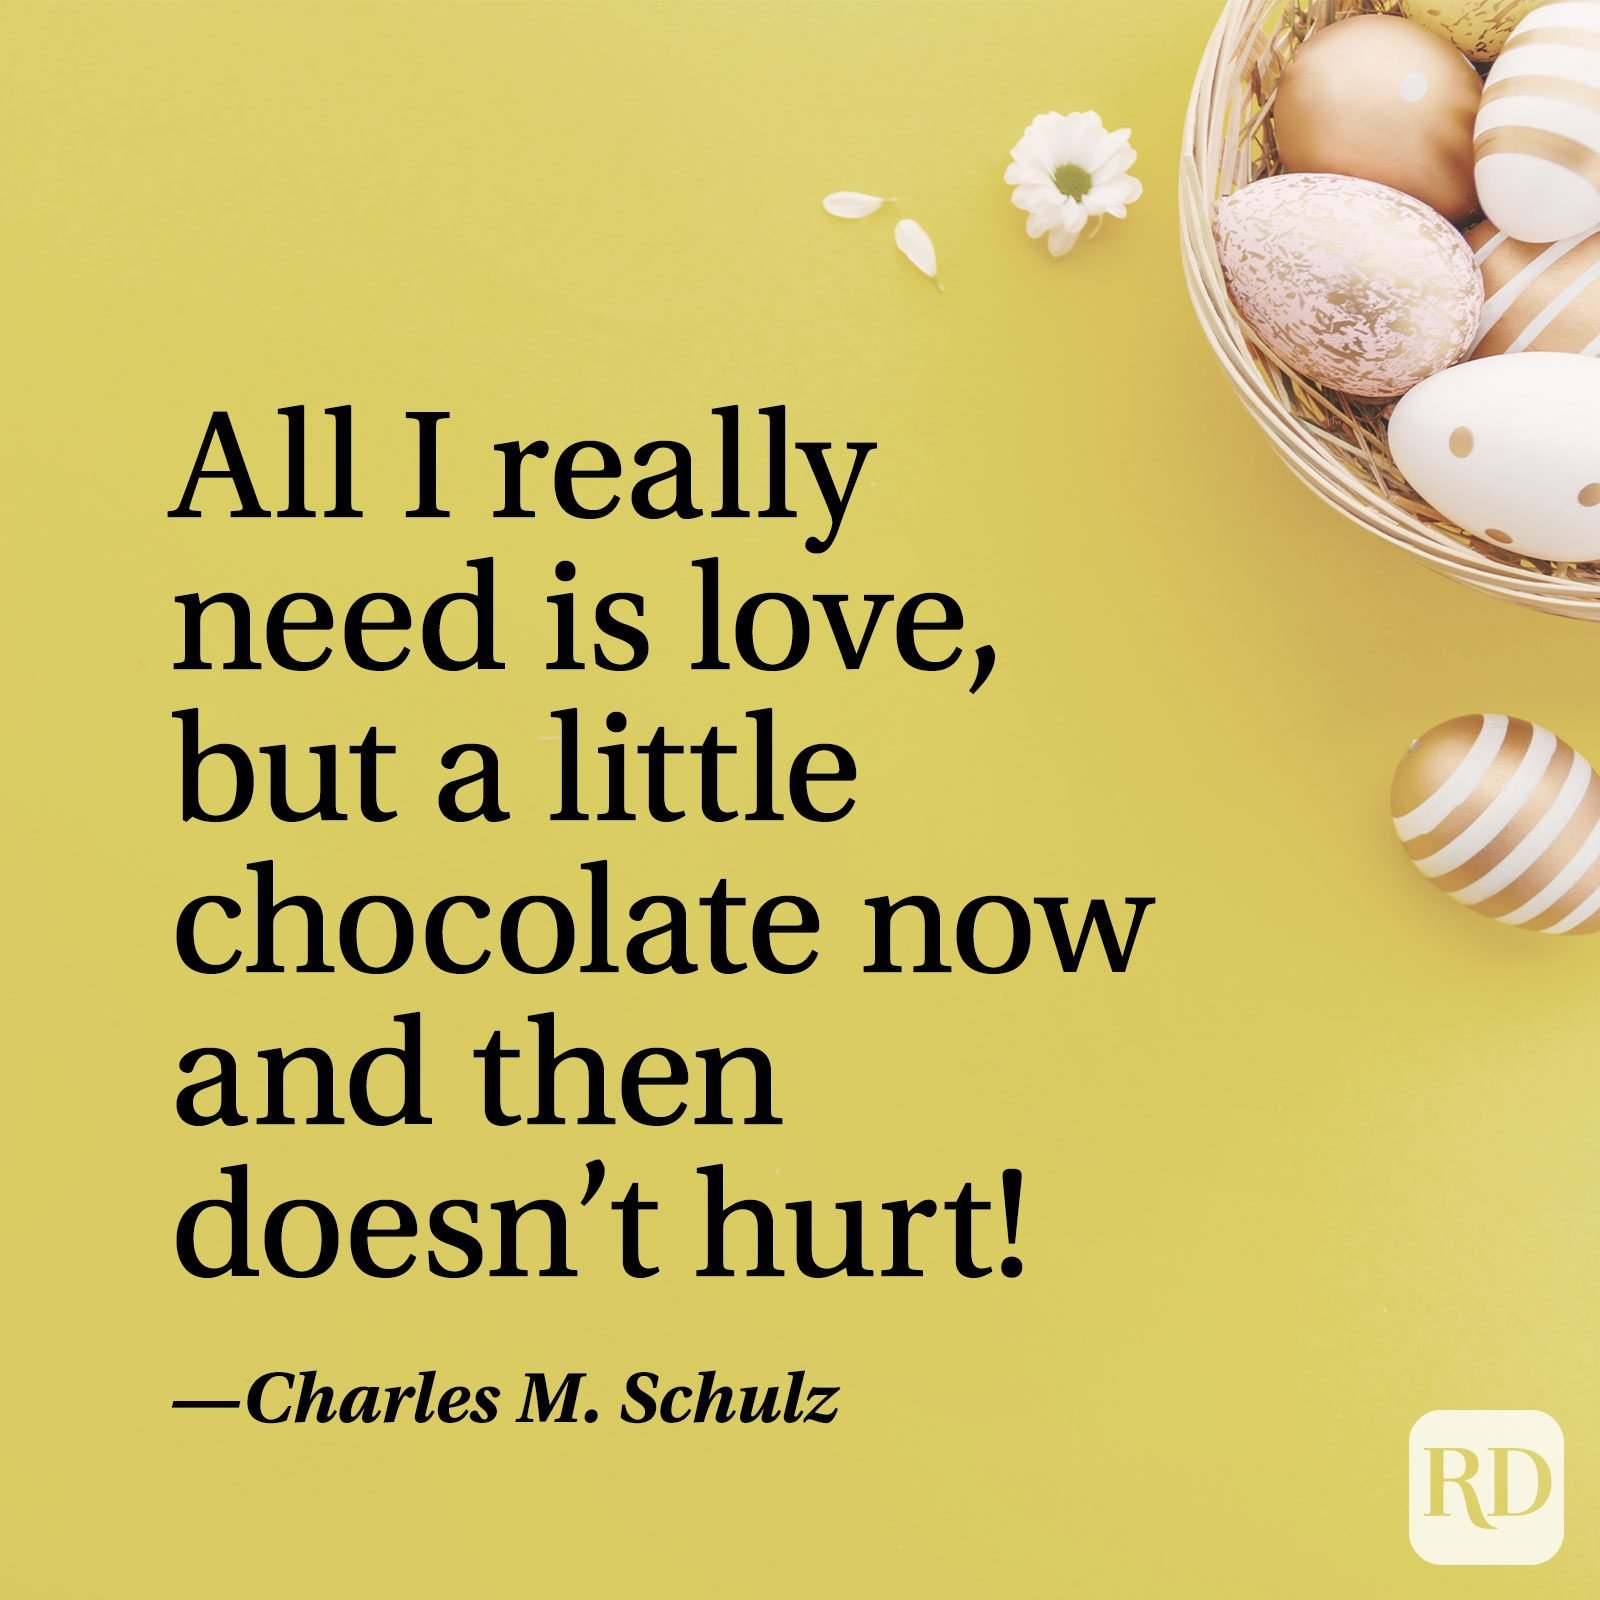 """All I really need is love, but a little chocolate now and then doesn't hurt!"" — Charles M. Schulz"